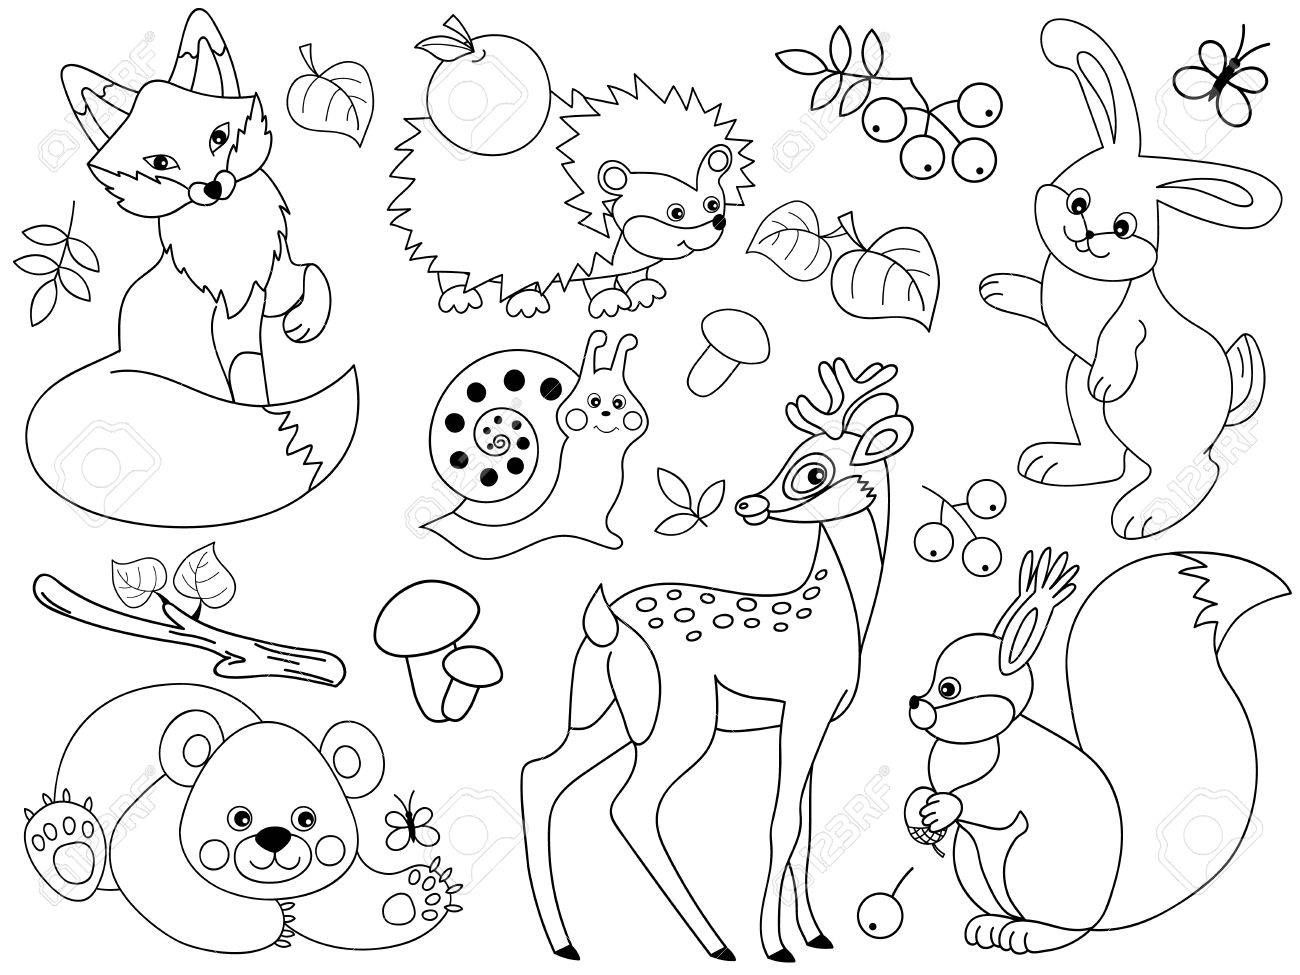 Set Of Black And White Cute Wild Animals In The Forest Fox Deer Bear Hedgehog Squirrel Snail And Animal Coloring Pages Cute Wild Animals Animal Clipart